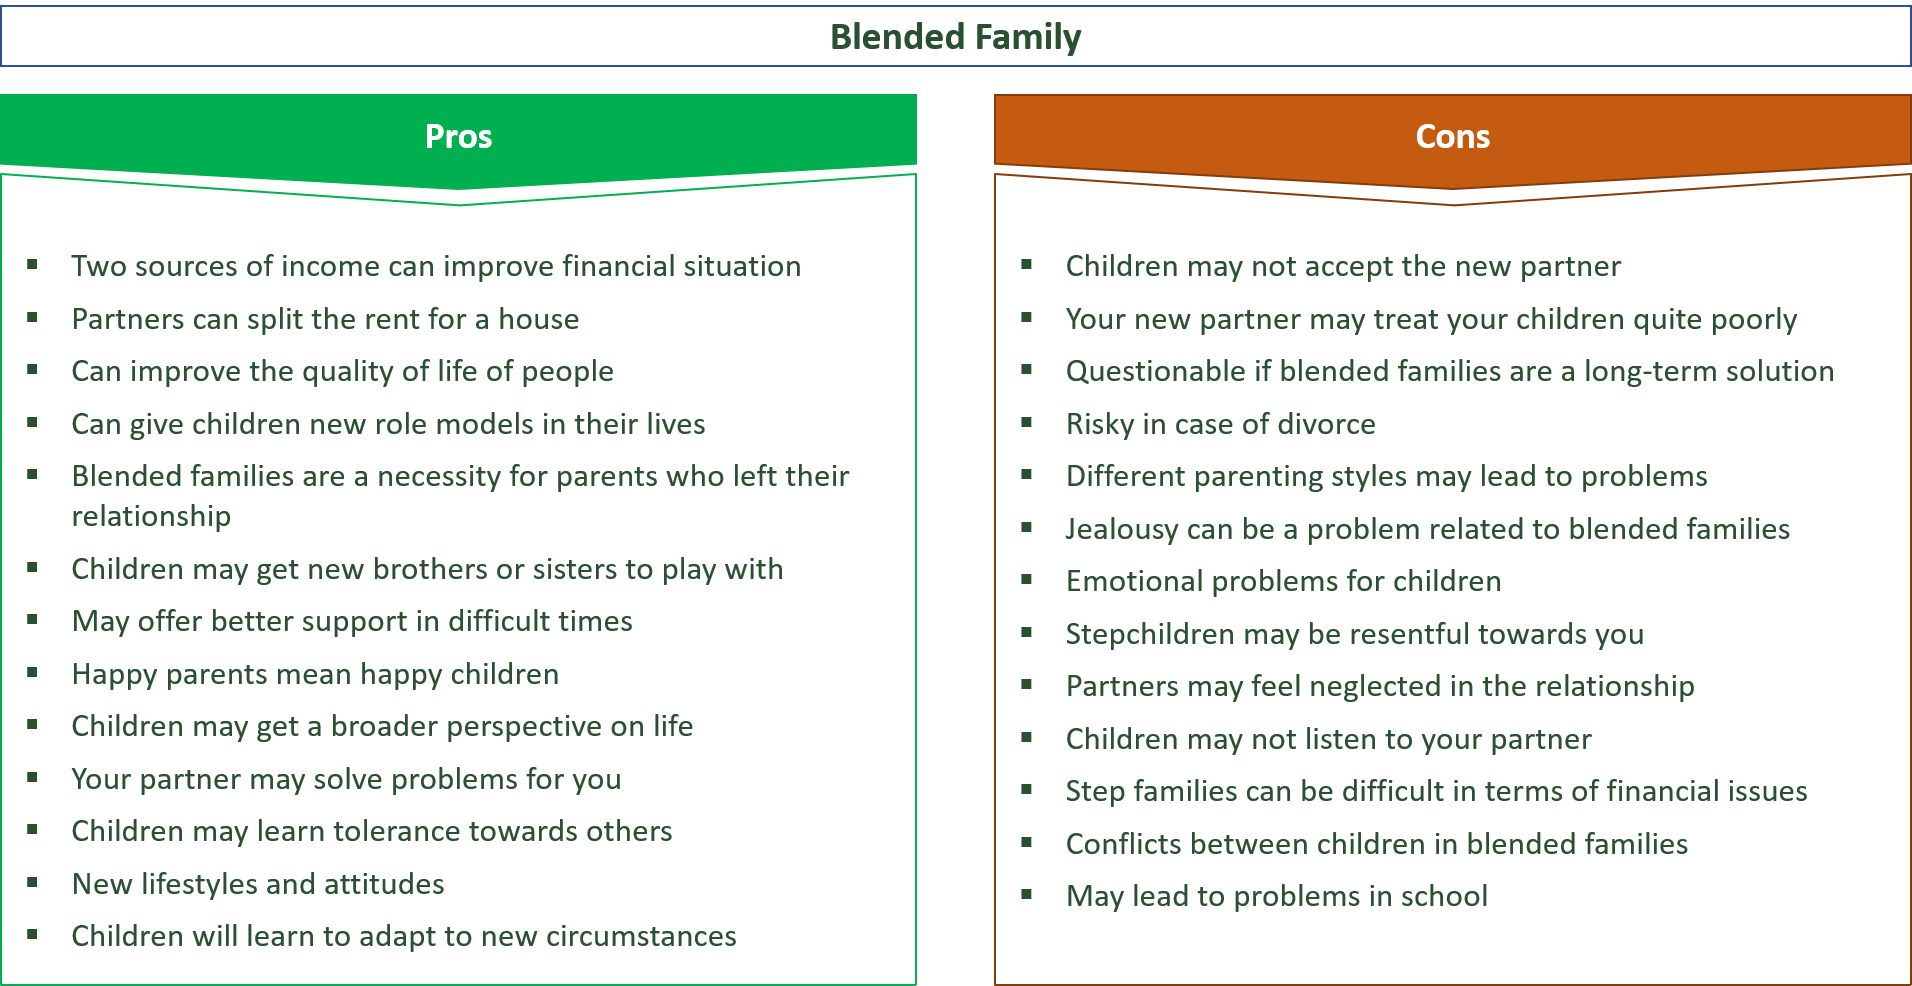 advantages and disadvantages of blended families and step families